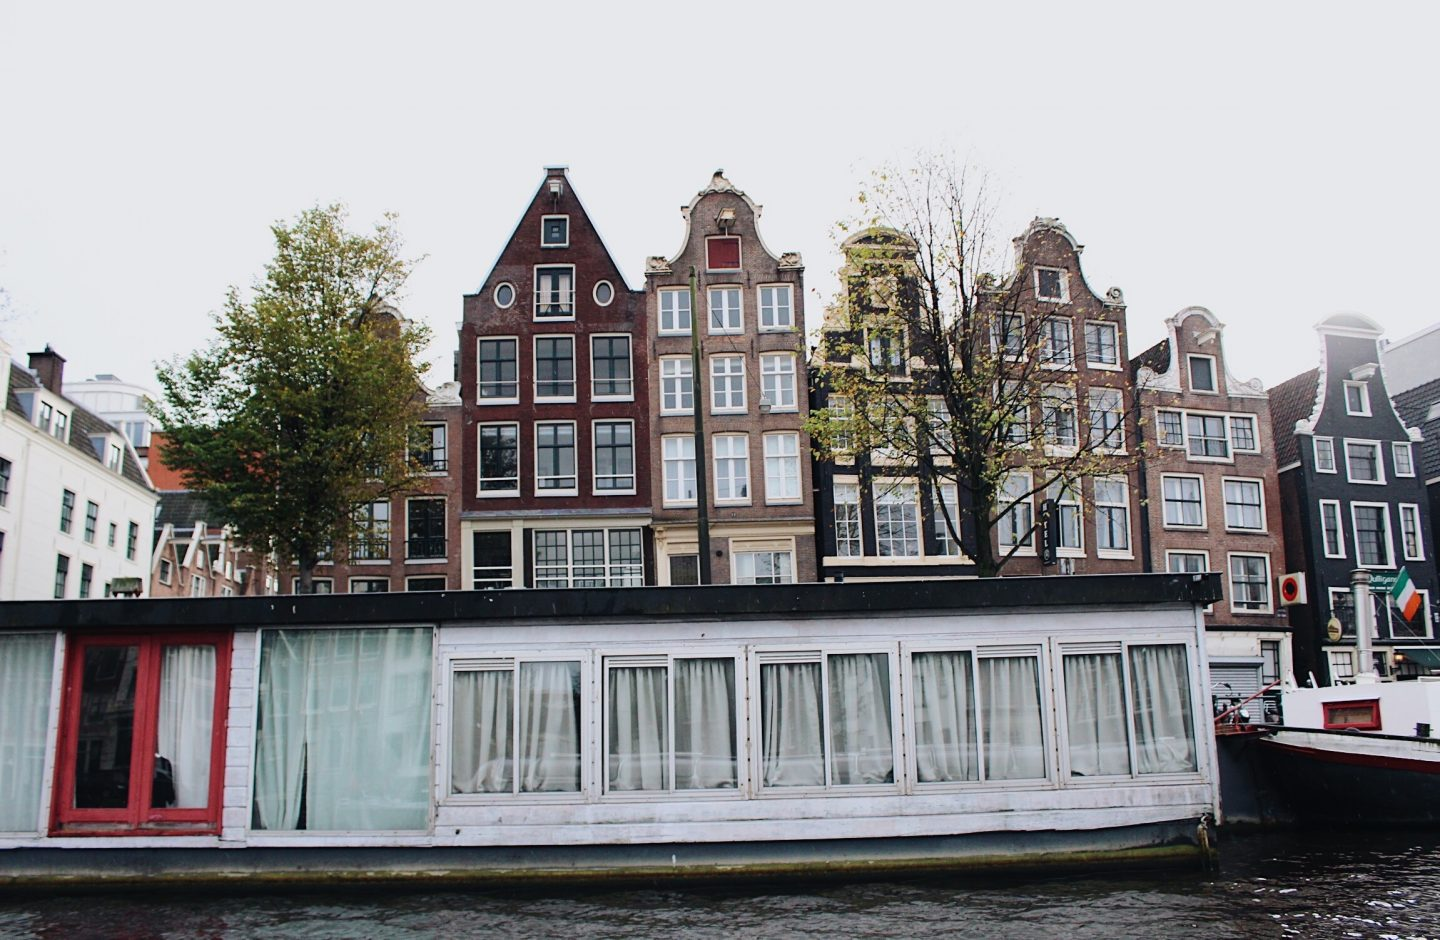 Looking at house boats on an Amsterdam canal tour!